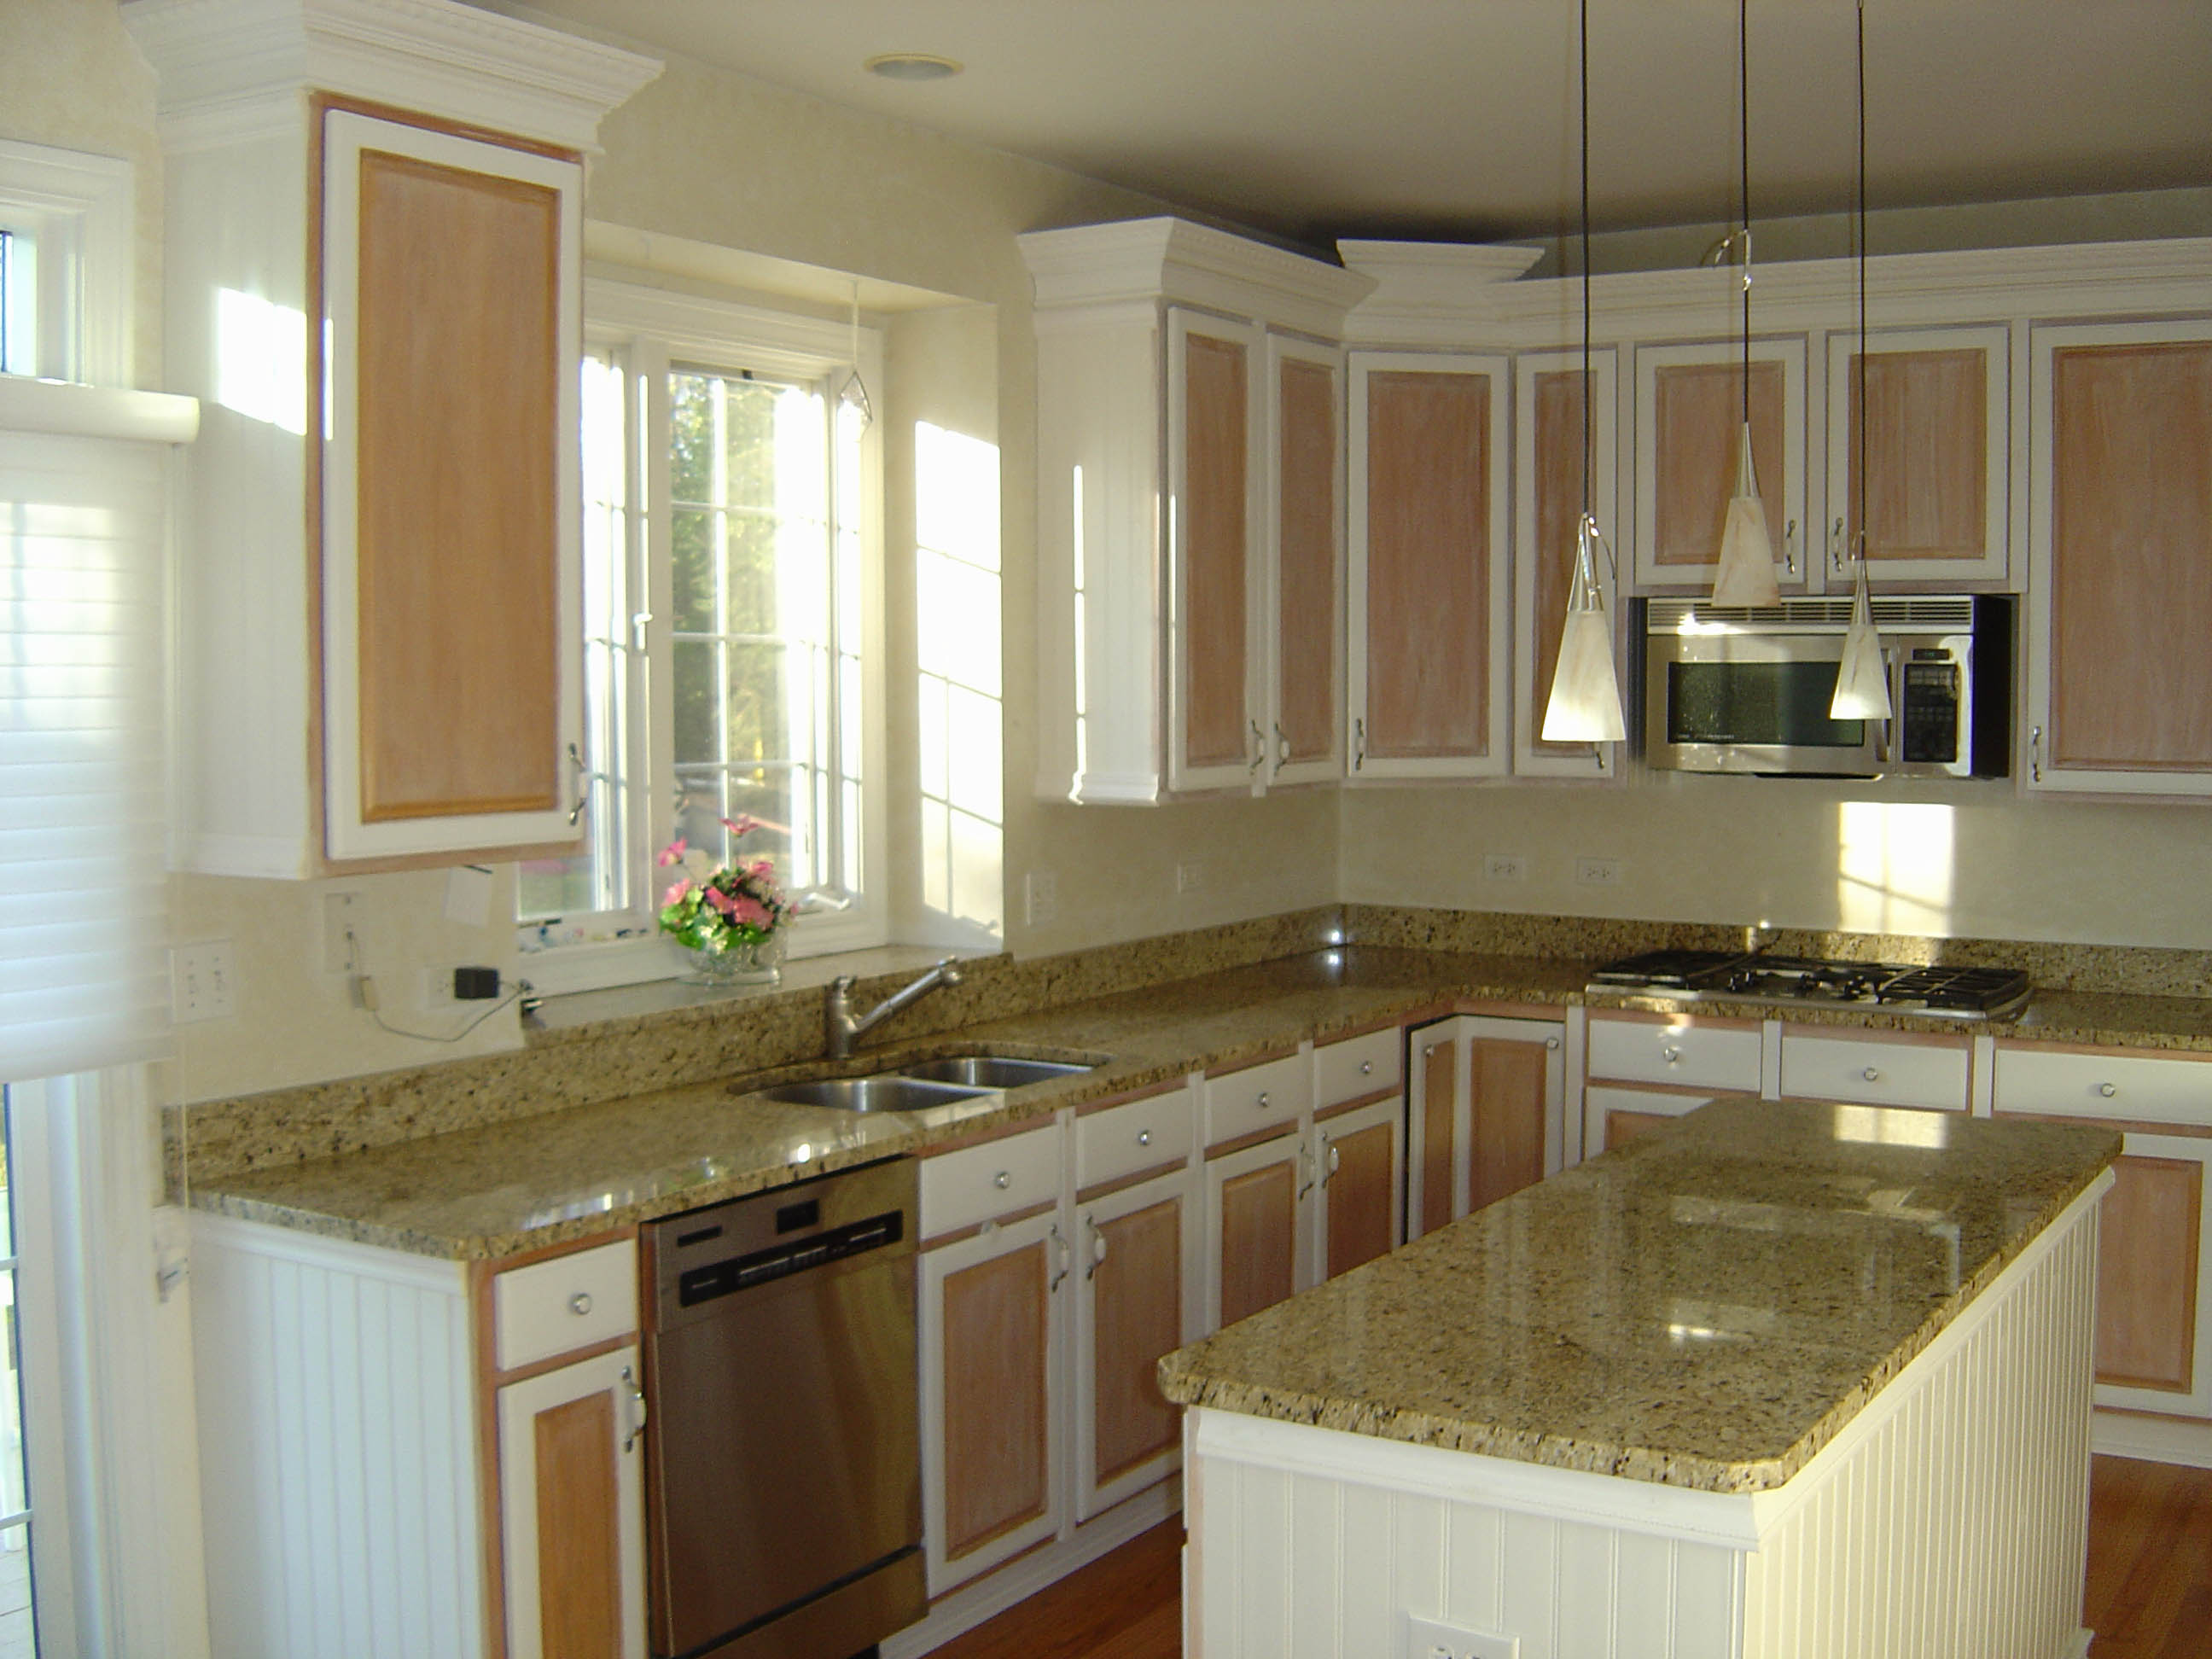 How Much Does Cabinet Refacing Cost Affordable Cabinet Refacing